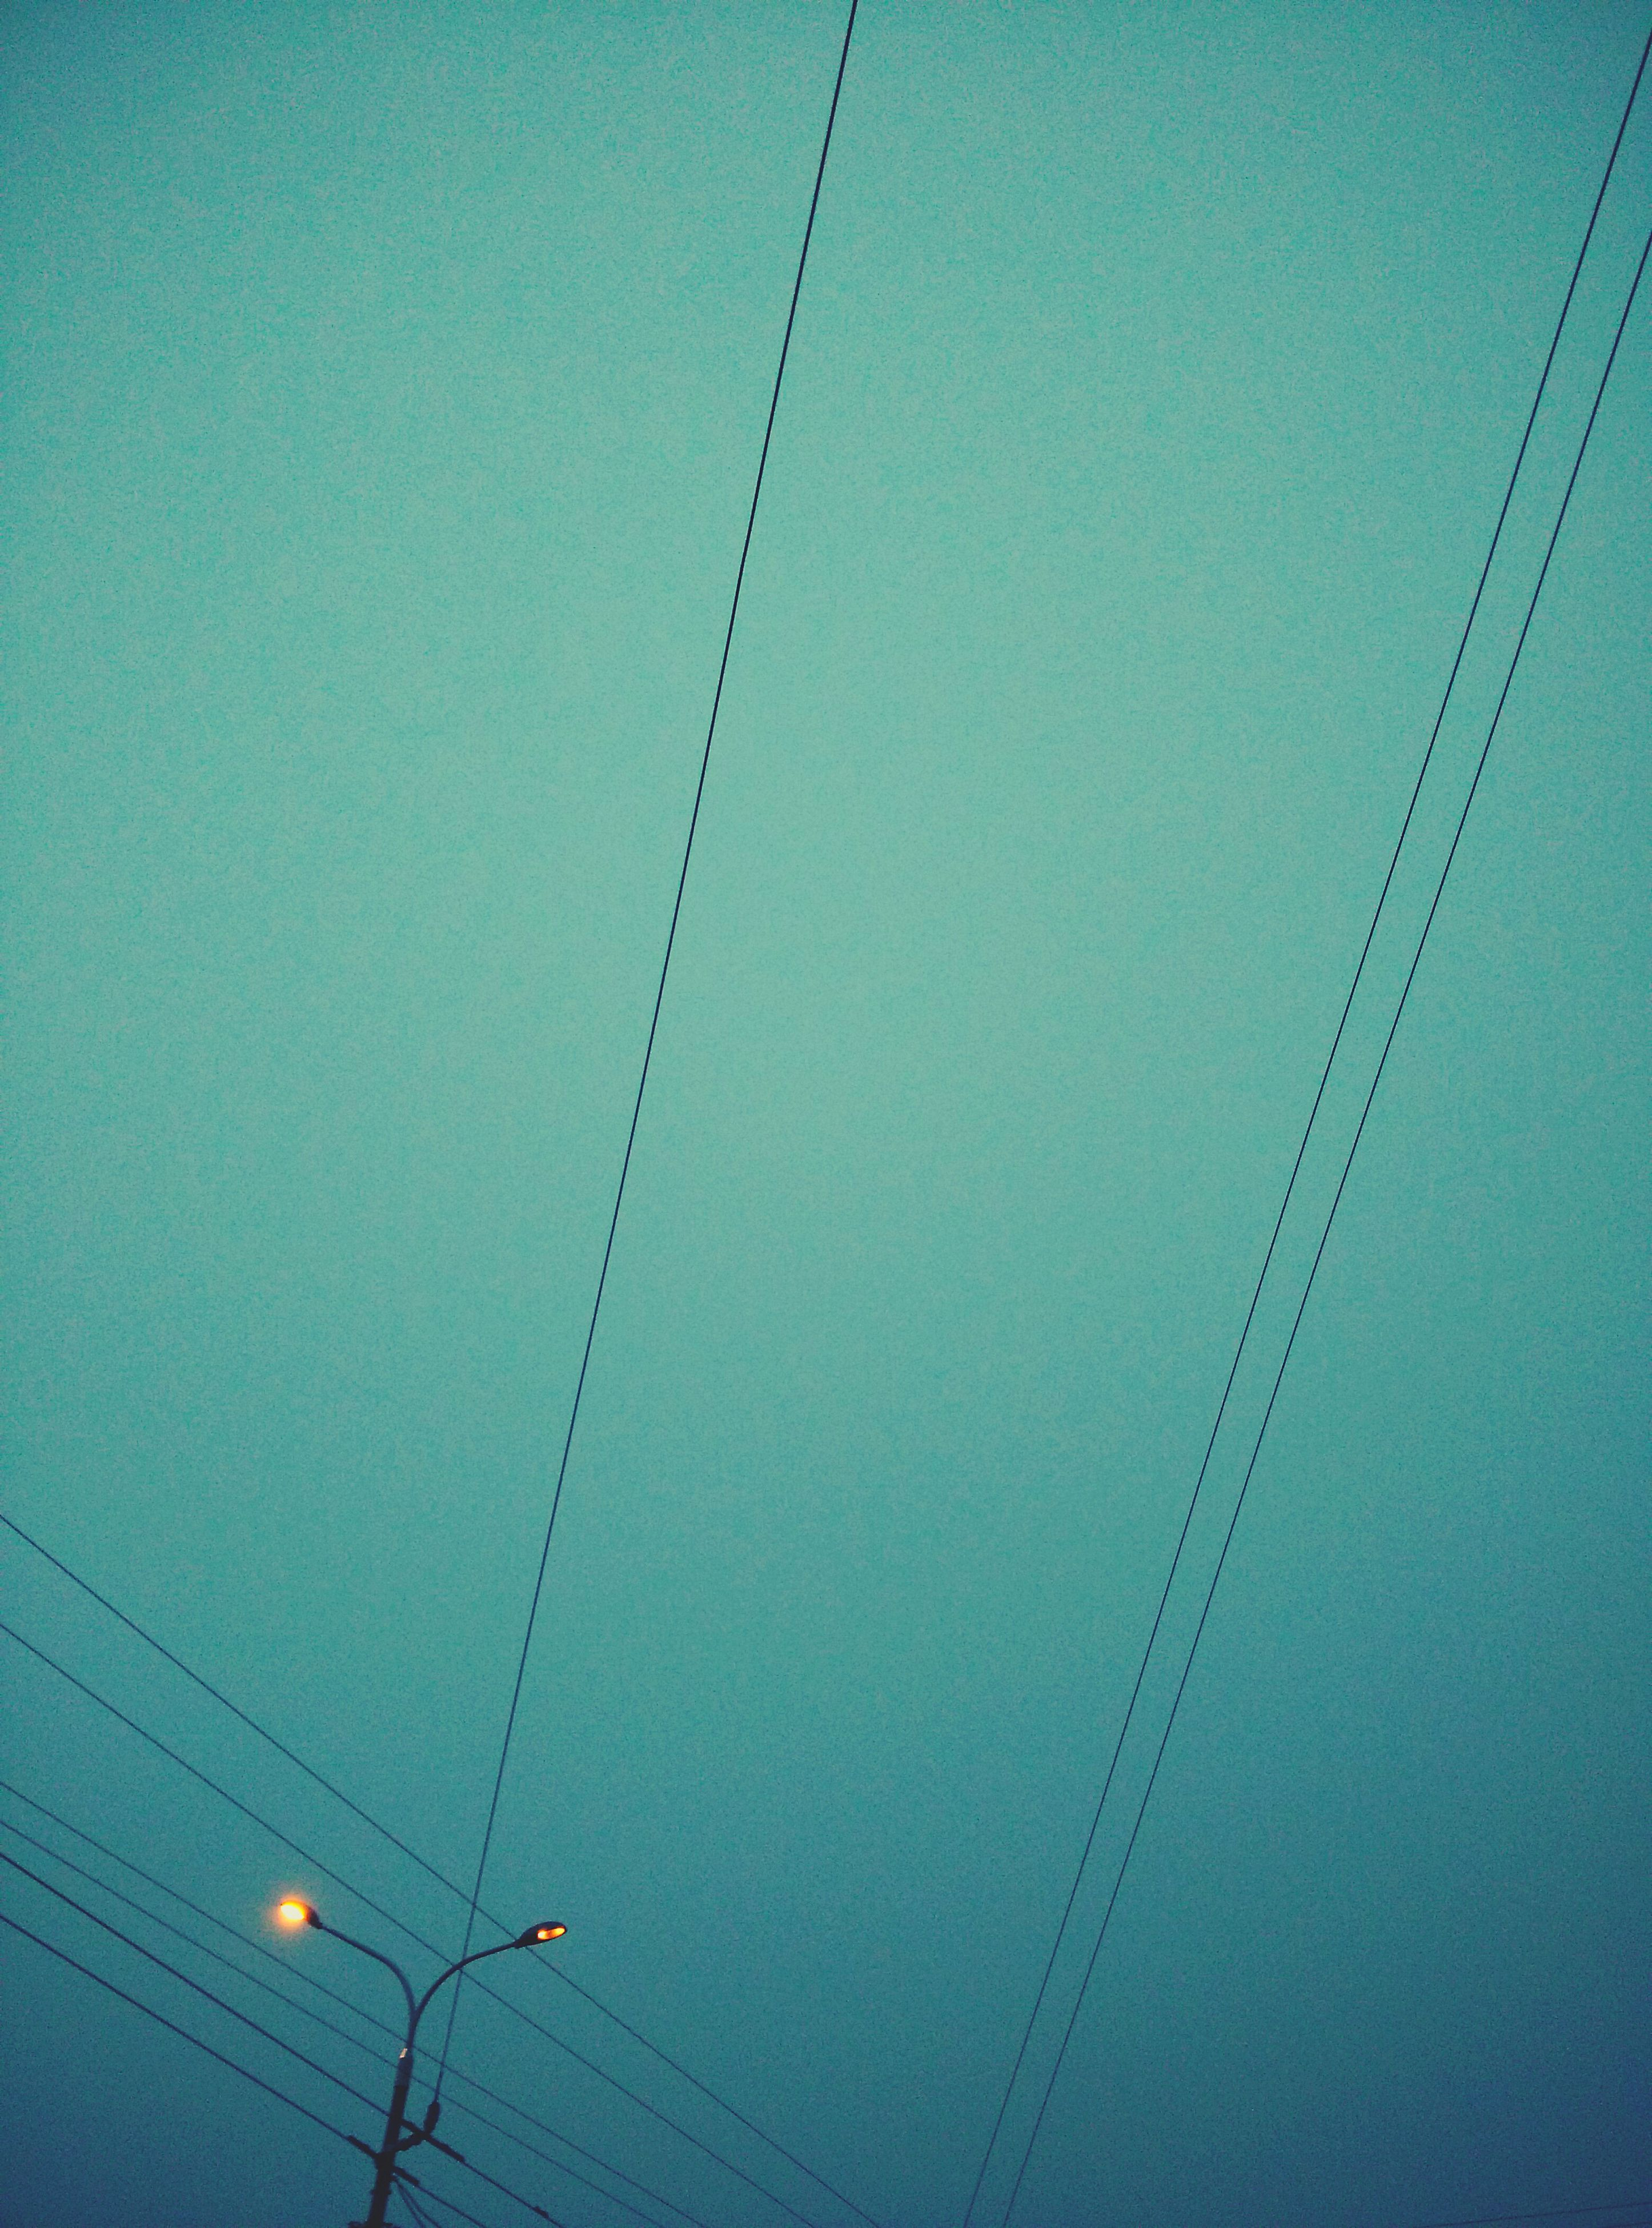 low angle view, electricity, power line, connection, cable, power supply, clear sky, technology, copy space, fuel and power generation, lighting equipment, electricity pylon, blue, no people, built structure, outdoors, hanging, ceiling, sky, architecture